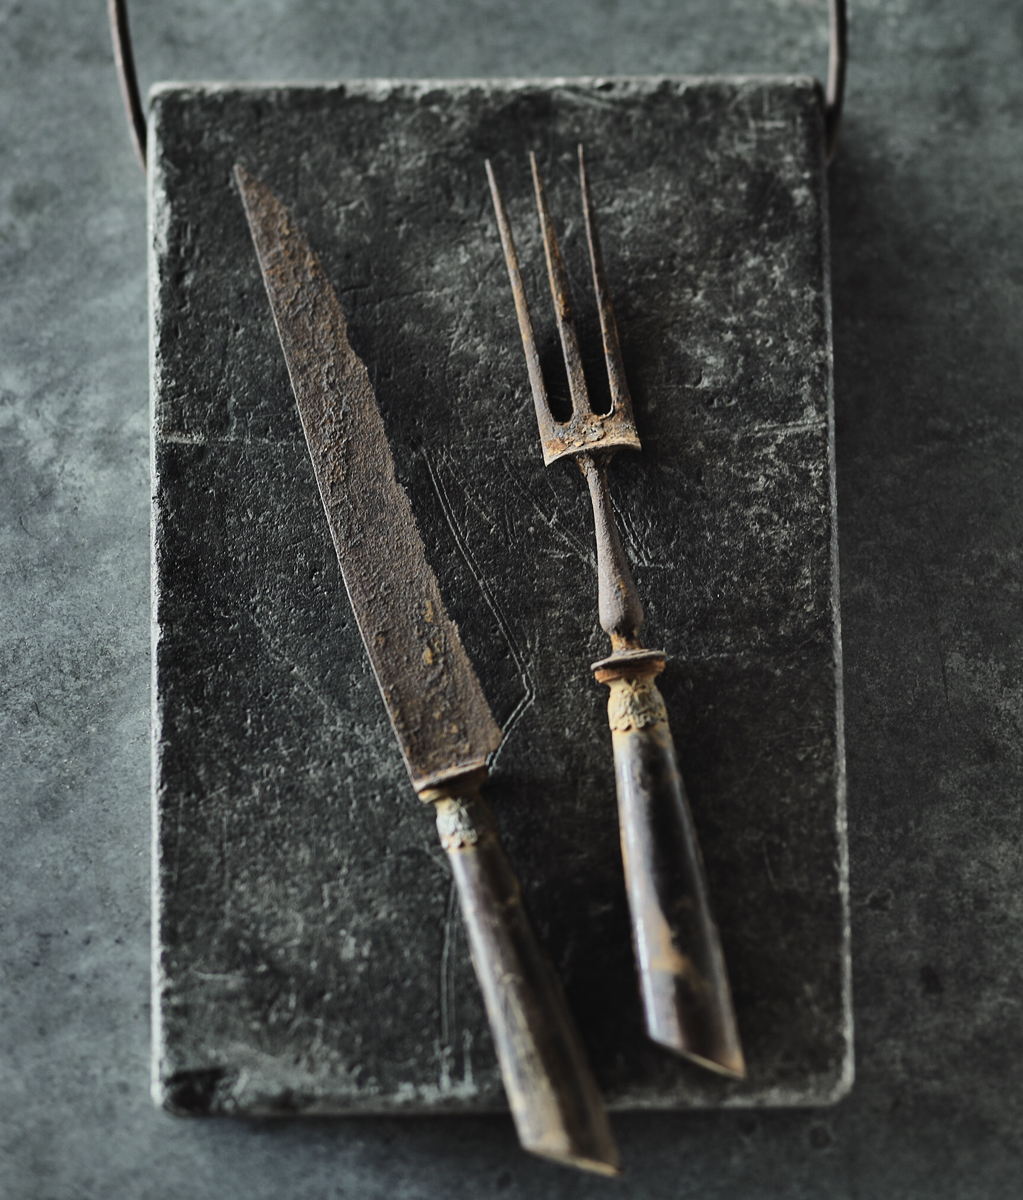 Rusted-Cutlery-apf